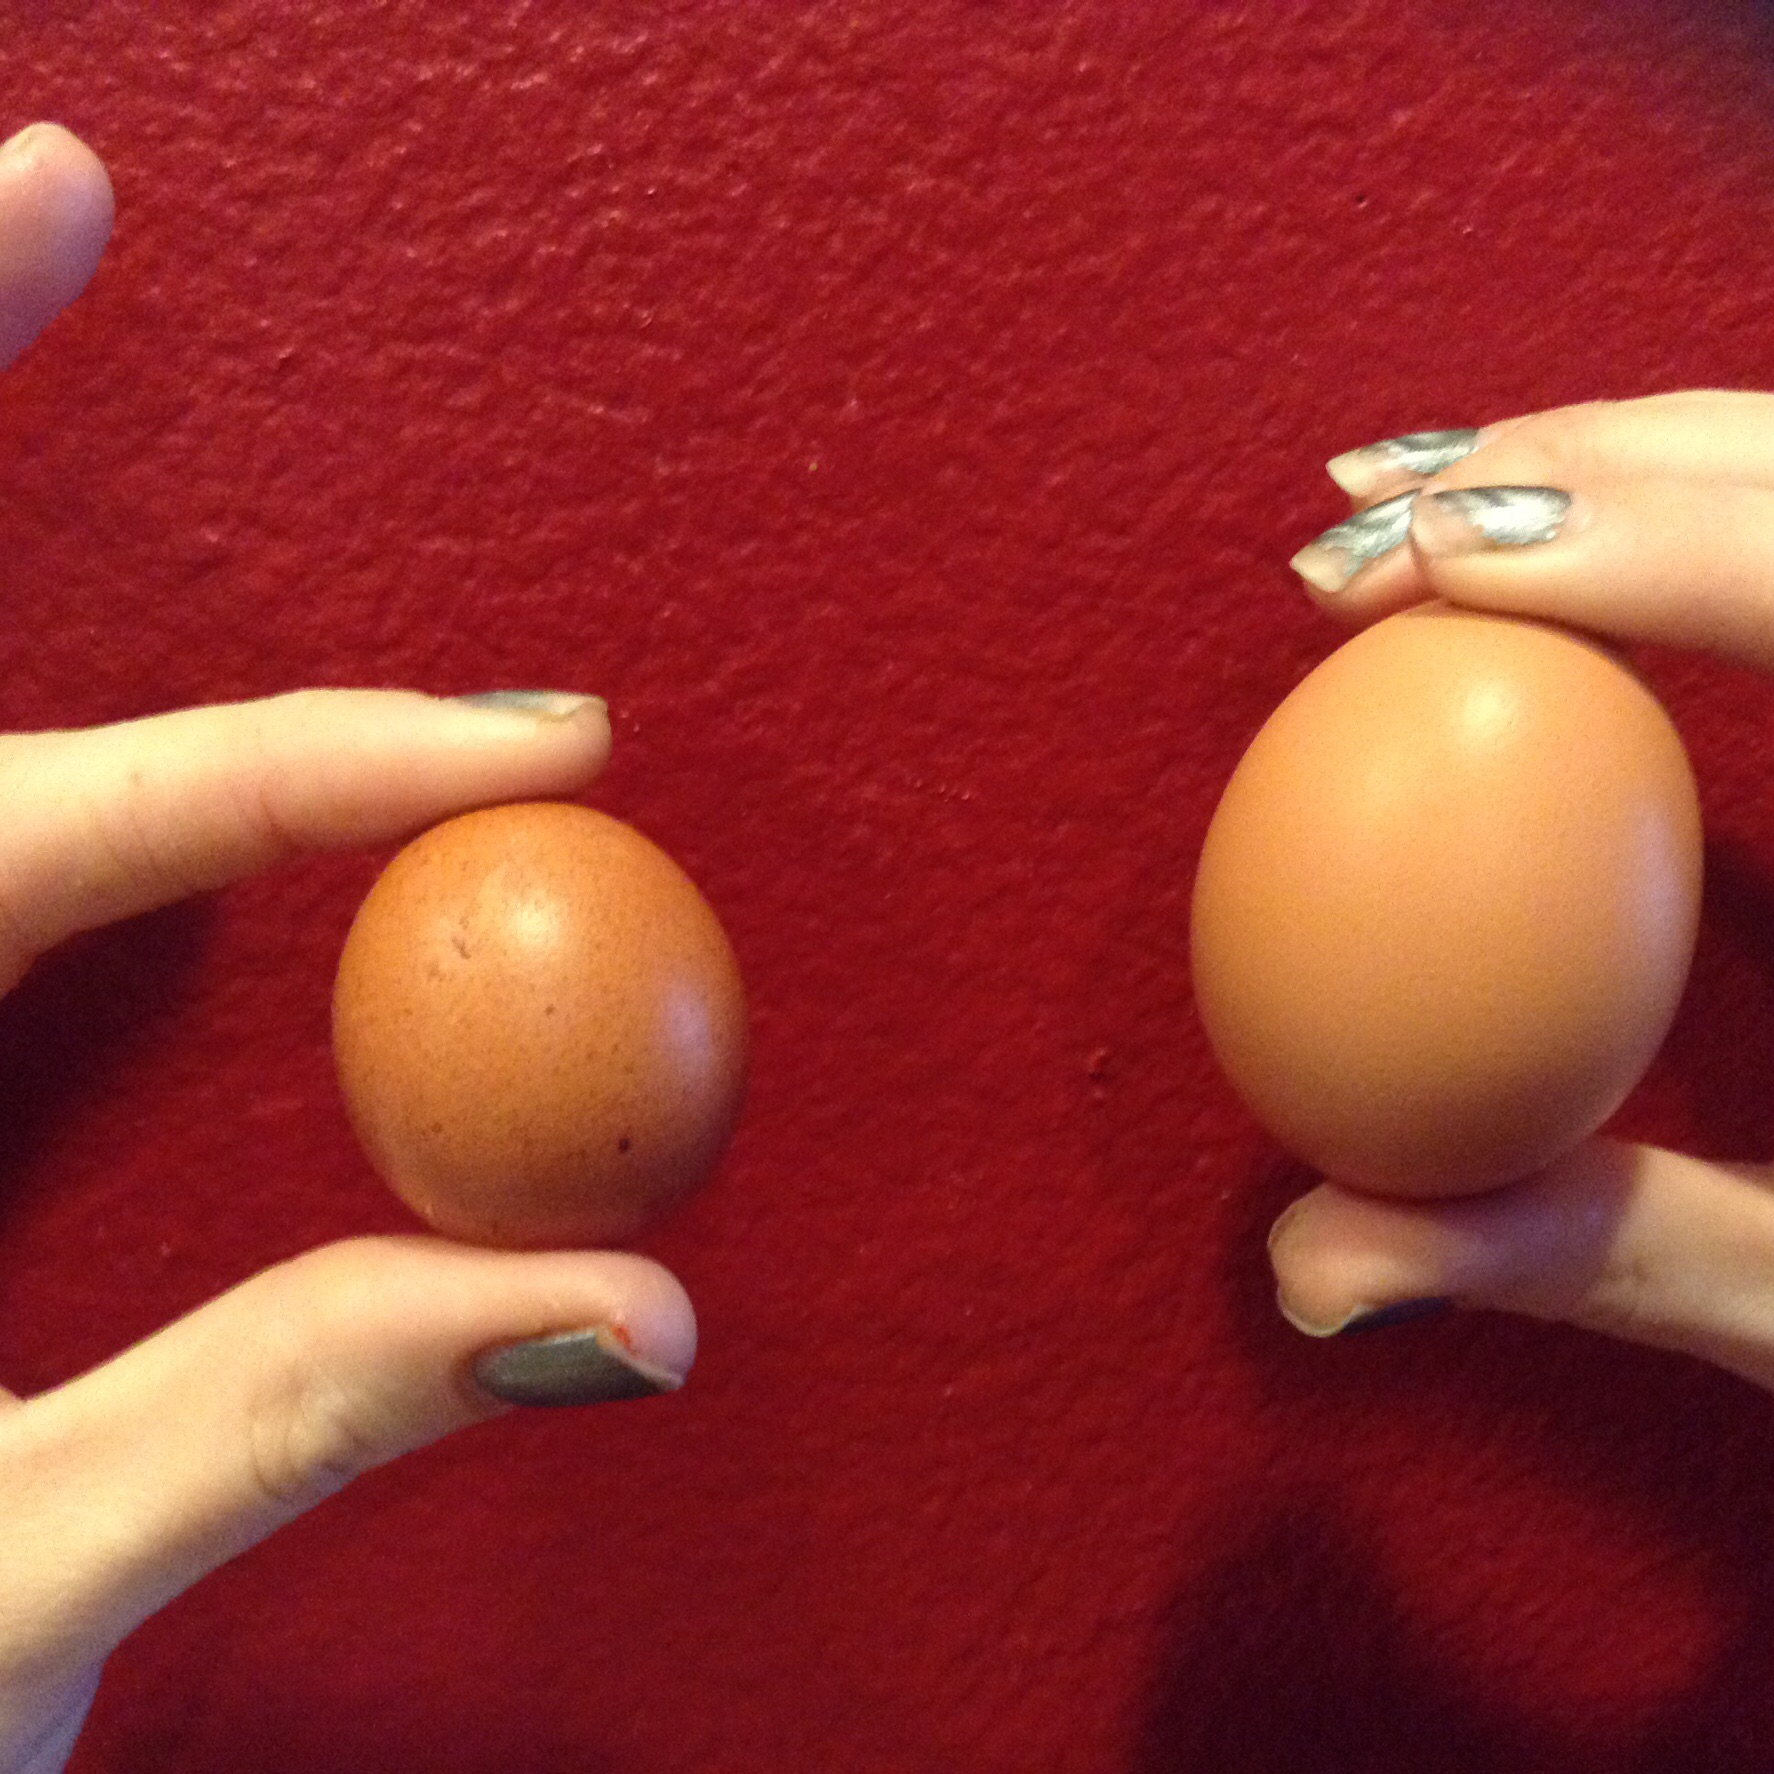 Fairy Egg and a regular egg.